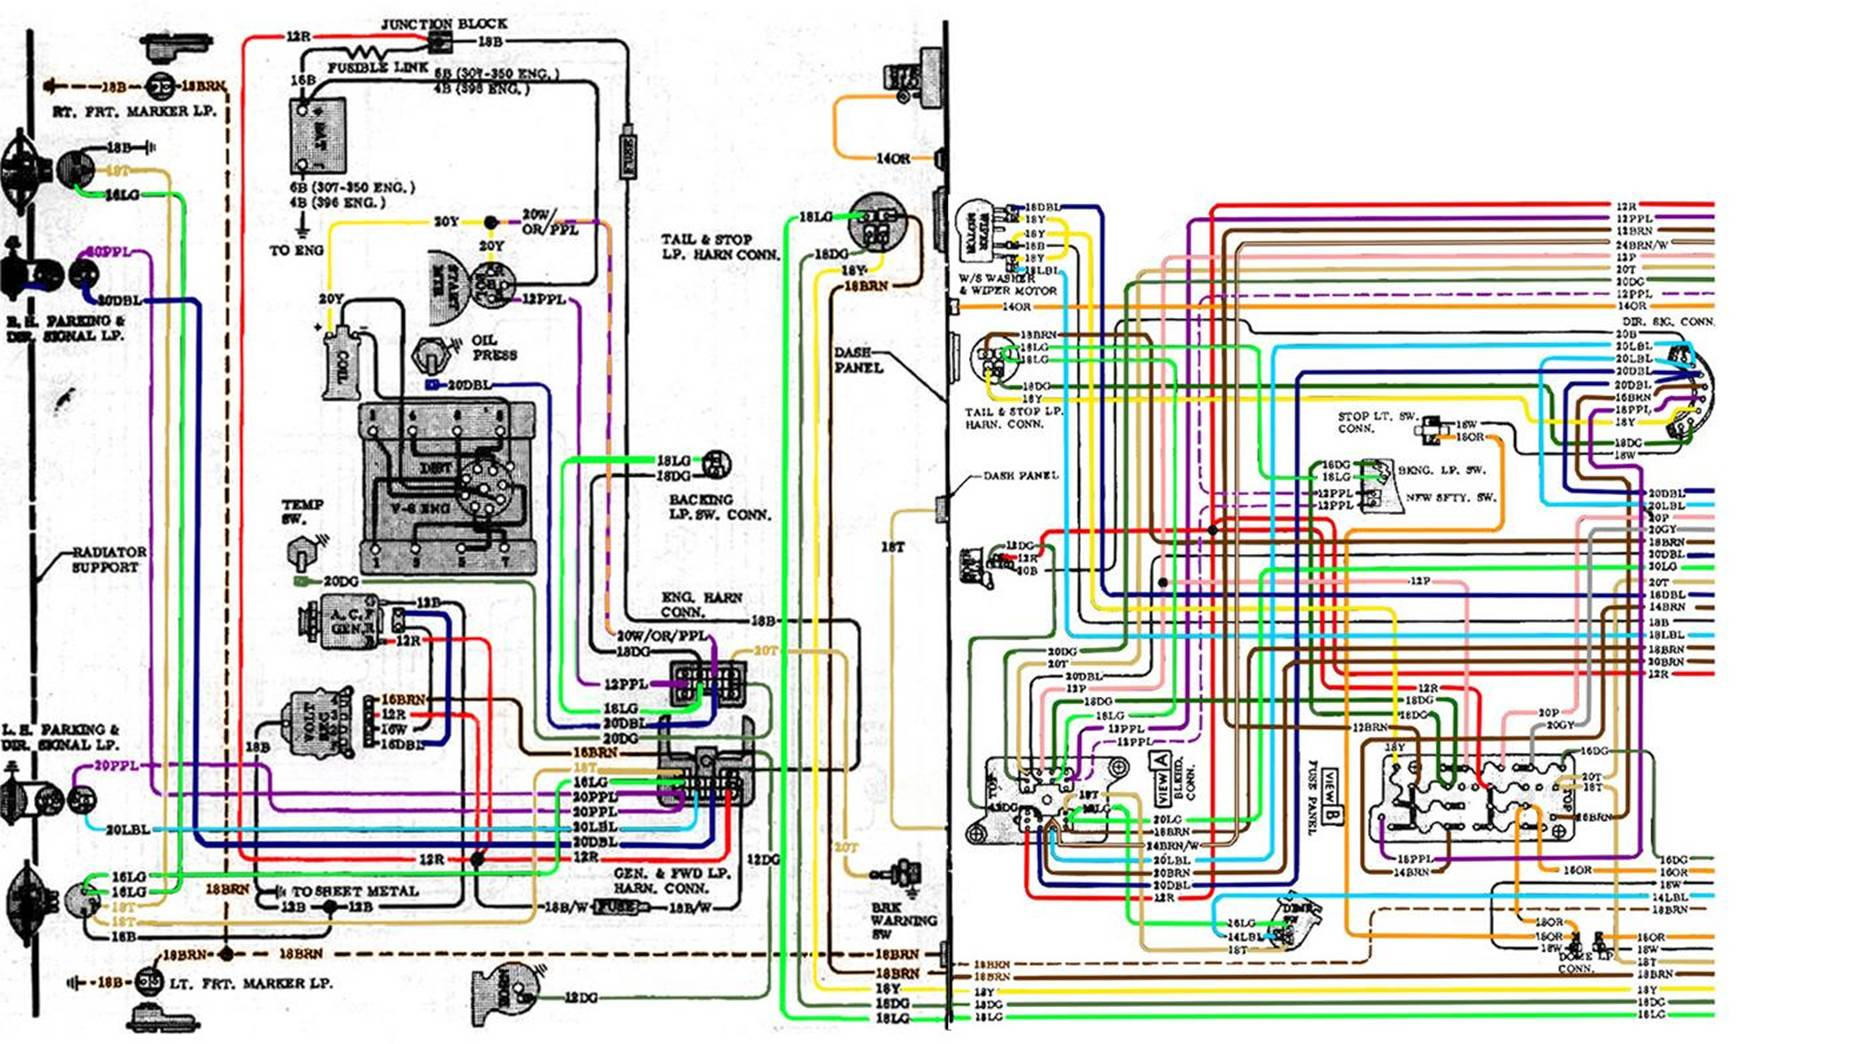 hight resolution of 67 72 chevy wiring diagram gm wiring diagrams free download chevrolet wiring diagram